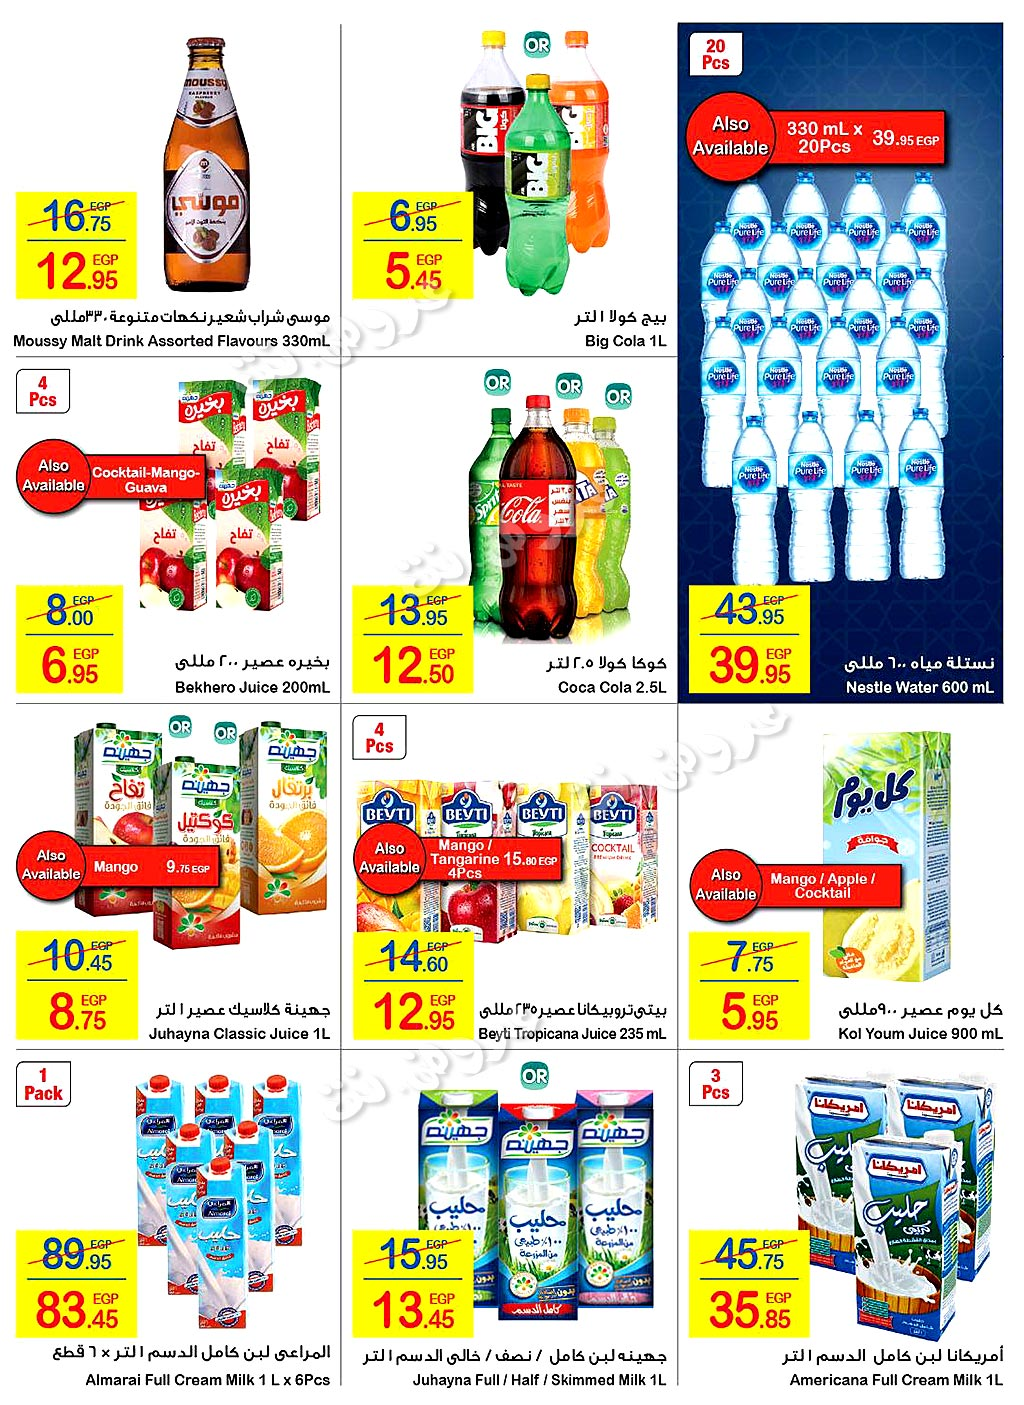 carrefour-market offers from 29july to 14aug 2019 page number 10 عروض كارفور ماركت من 29 يوليو حتى 14 أغسطس 2019 صفحة رقم 10